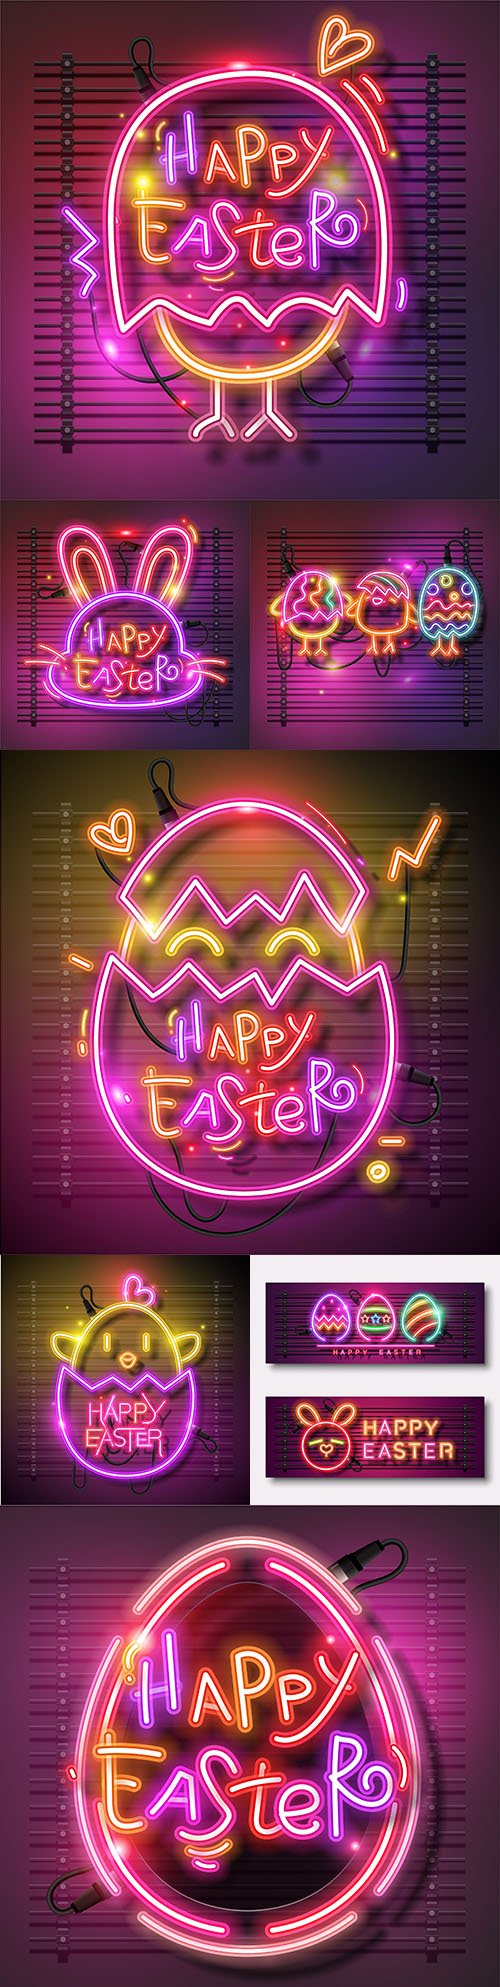 Happy Easter design banner with neon eggs illustration